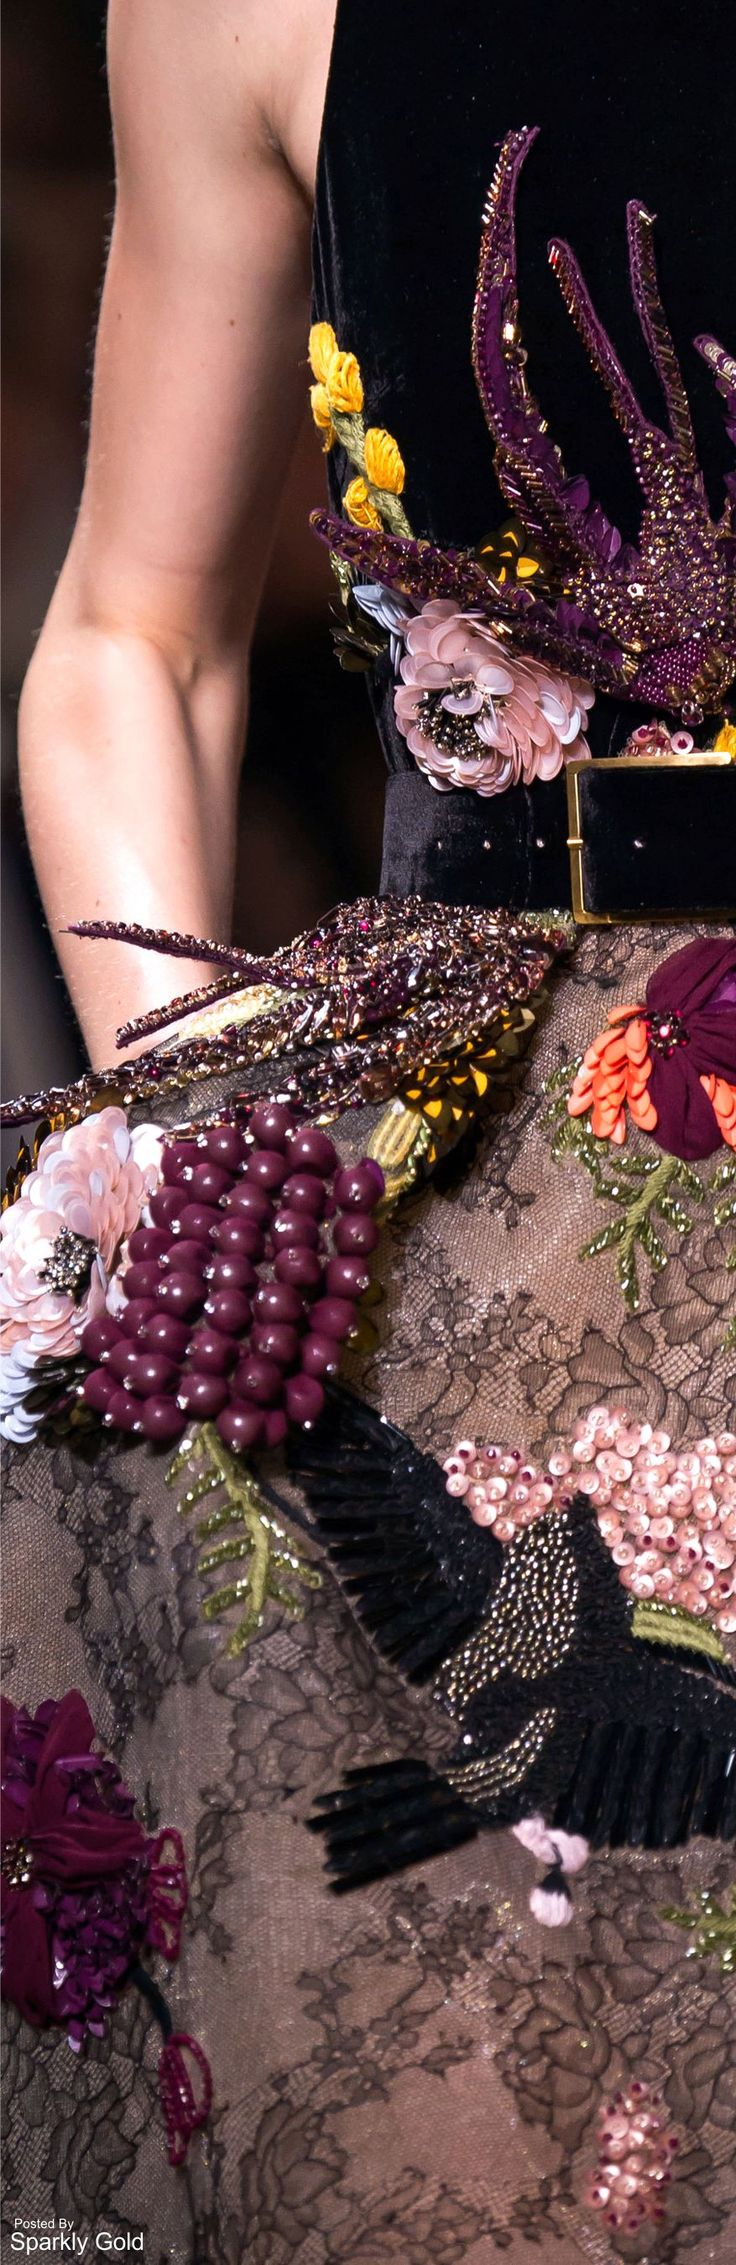 Elie Saab Fall 2016 Couture                                                                                                                                                                                 Mehr